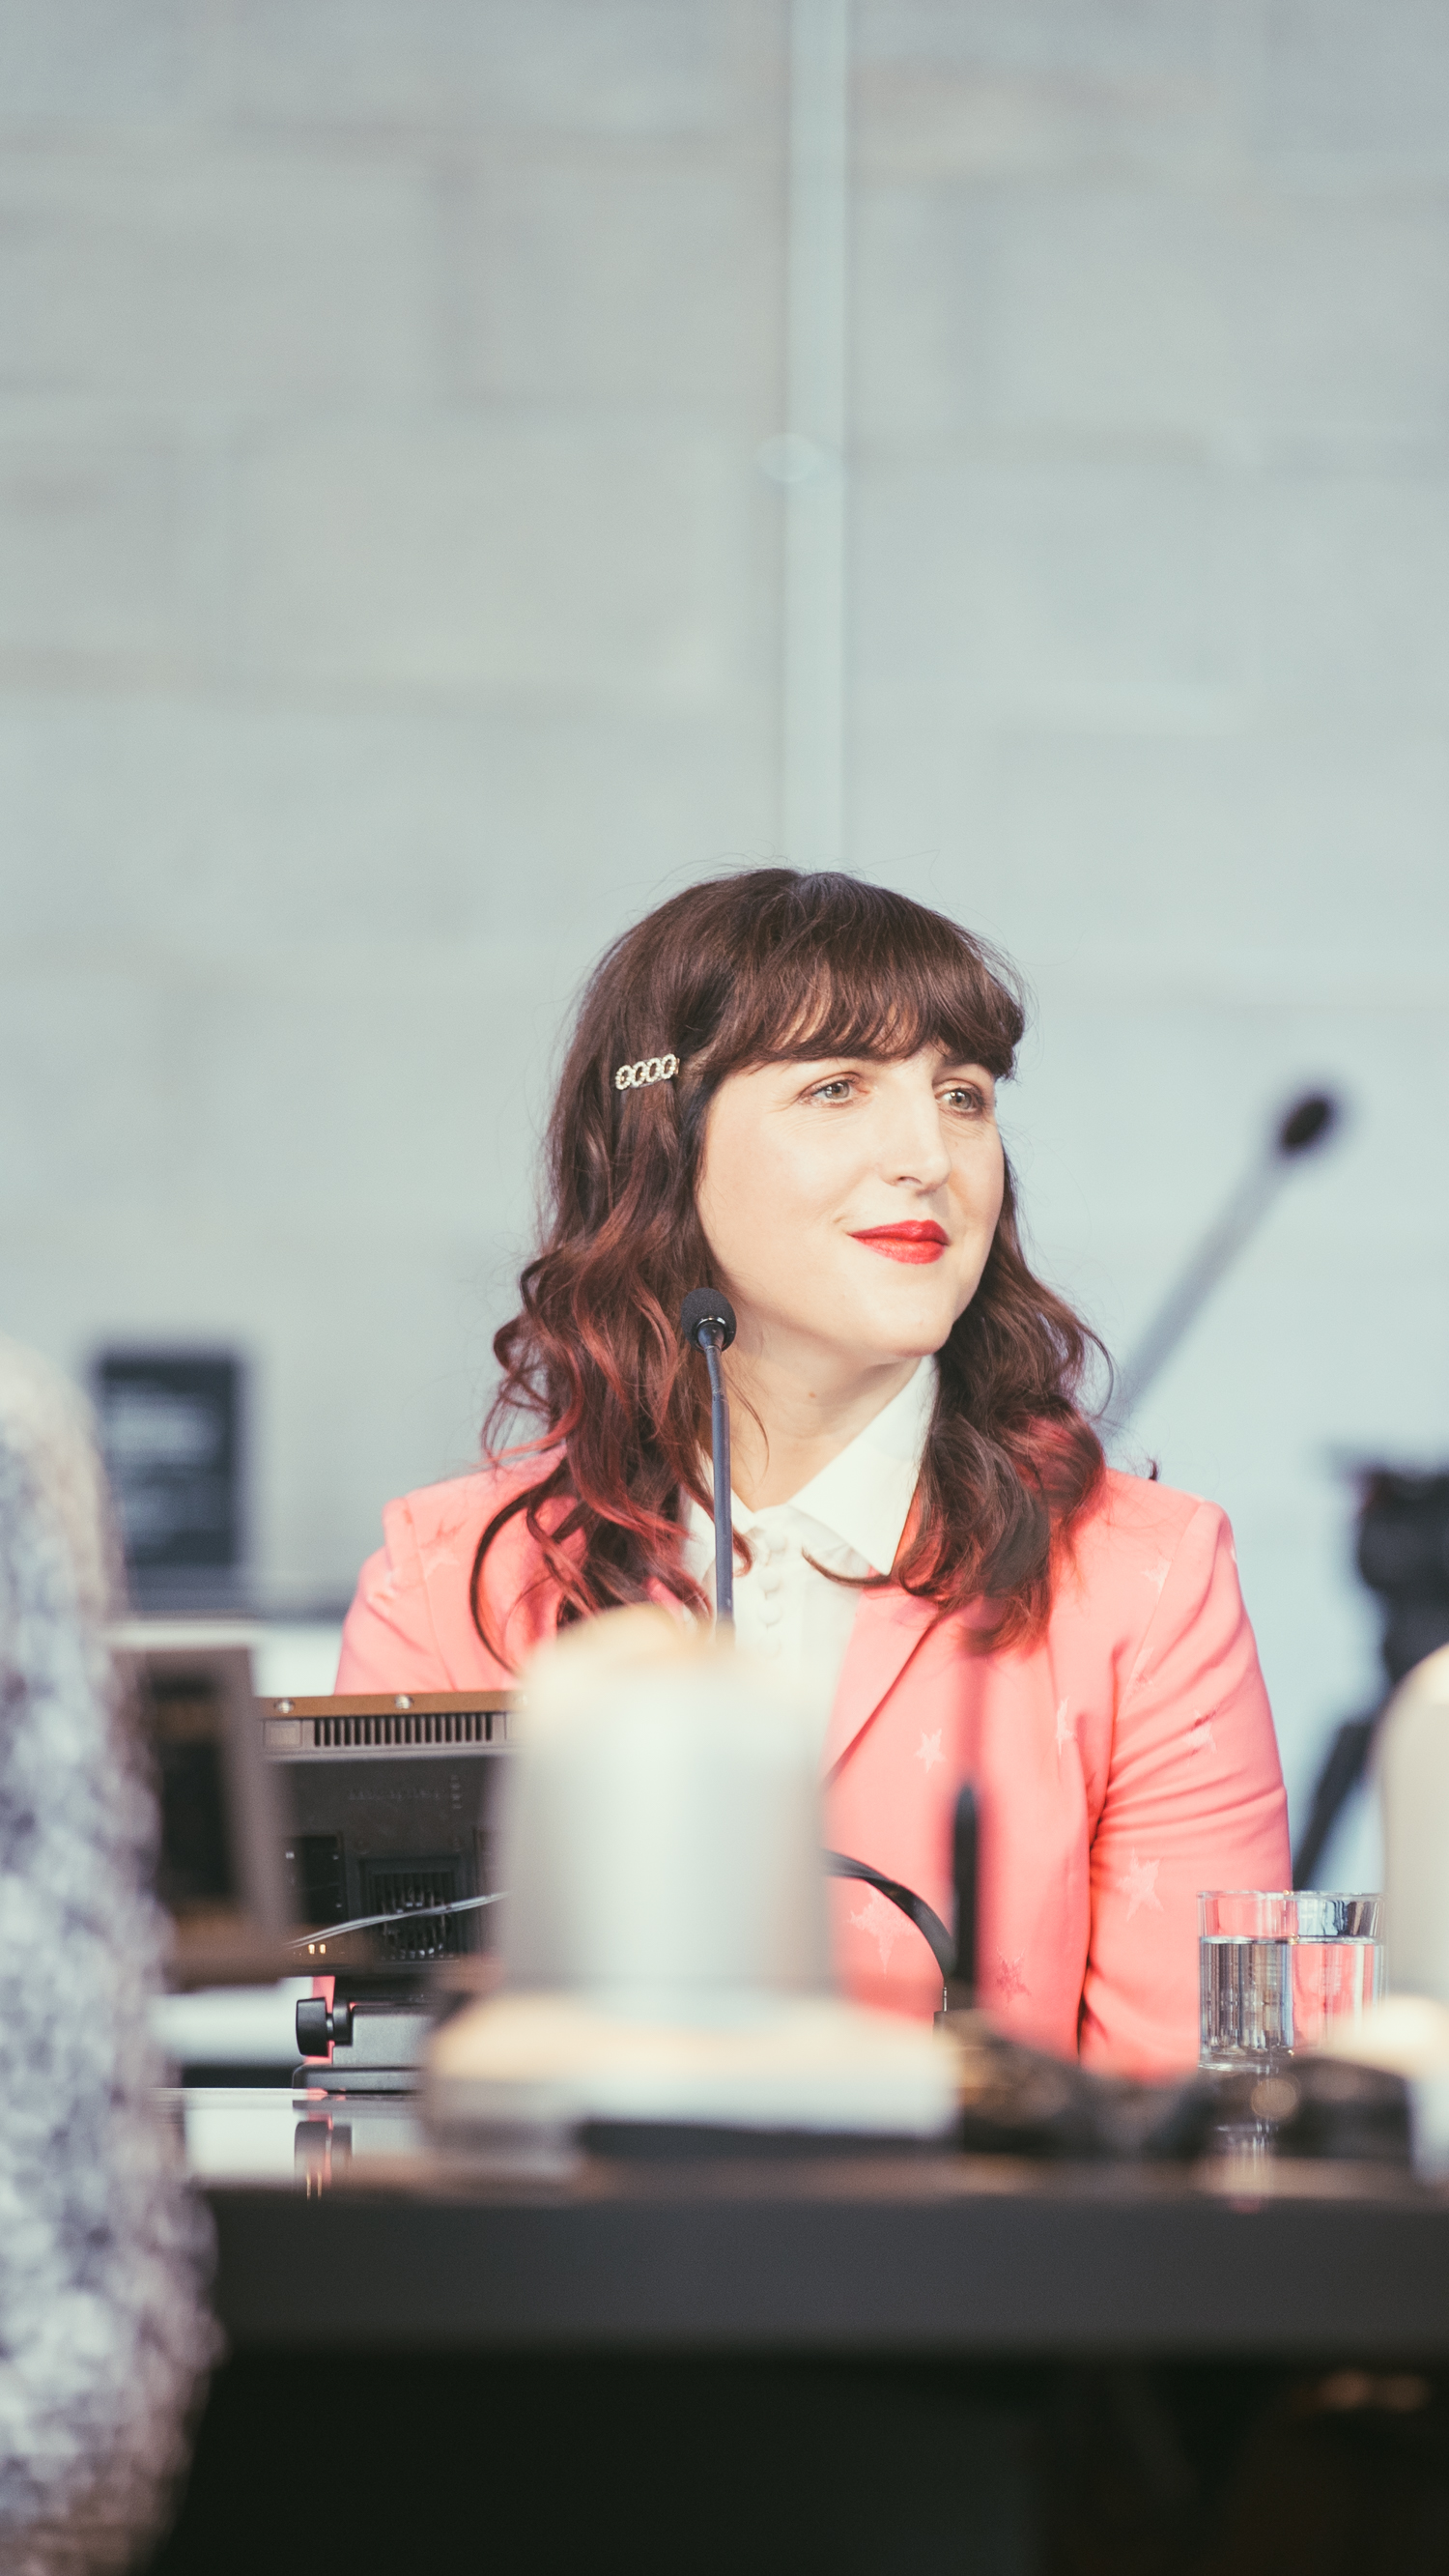 piera luisa gelardi executive creative director and co-founder refinery29.jpg